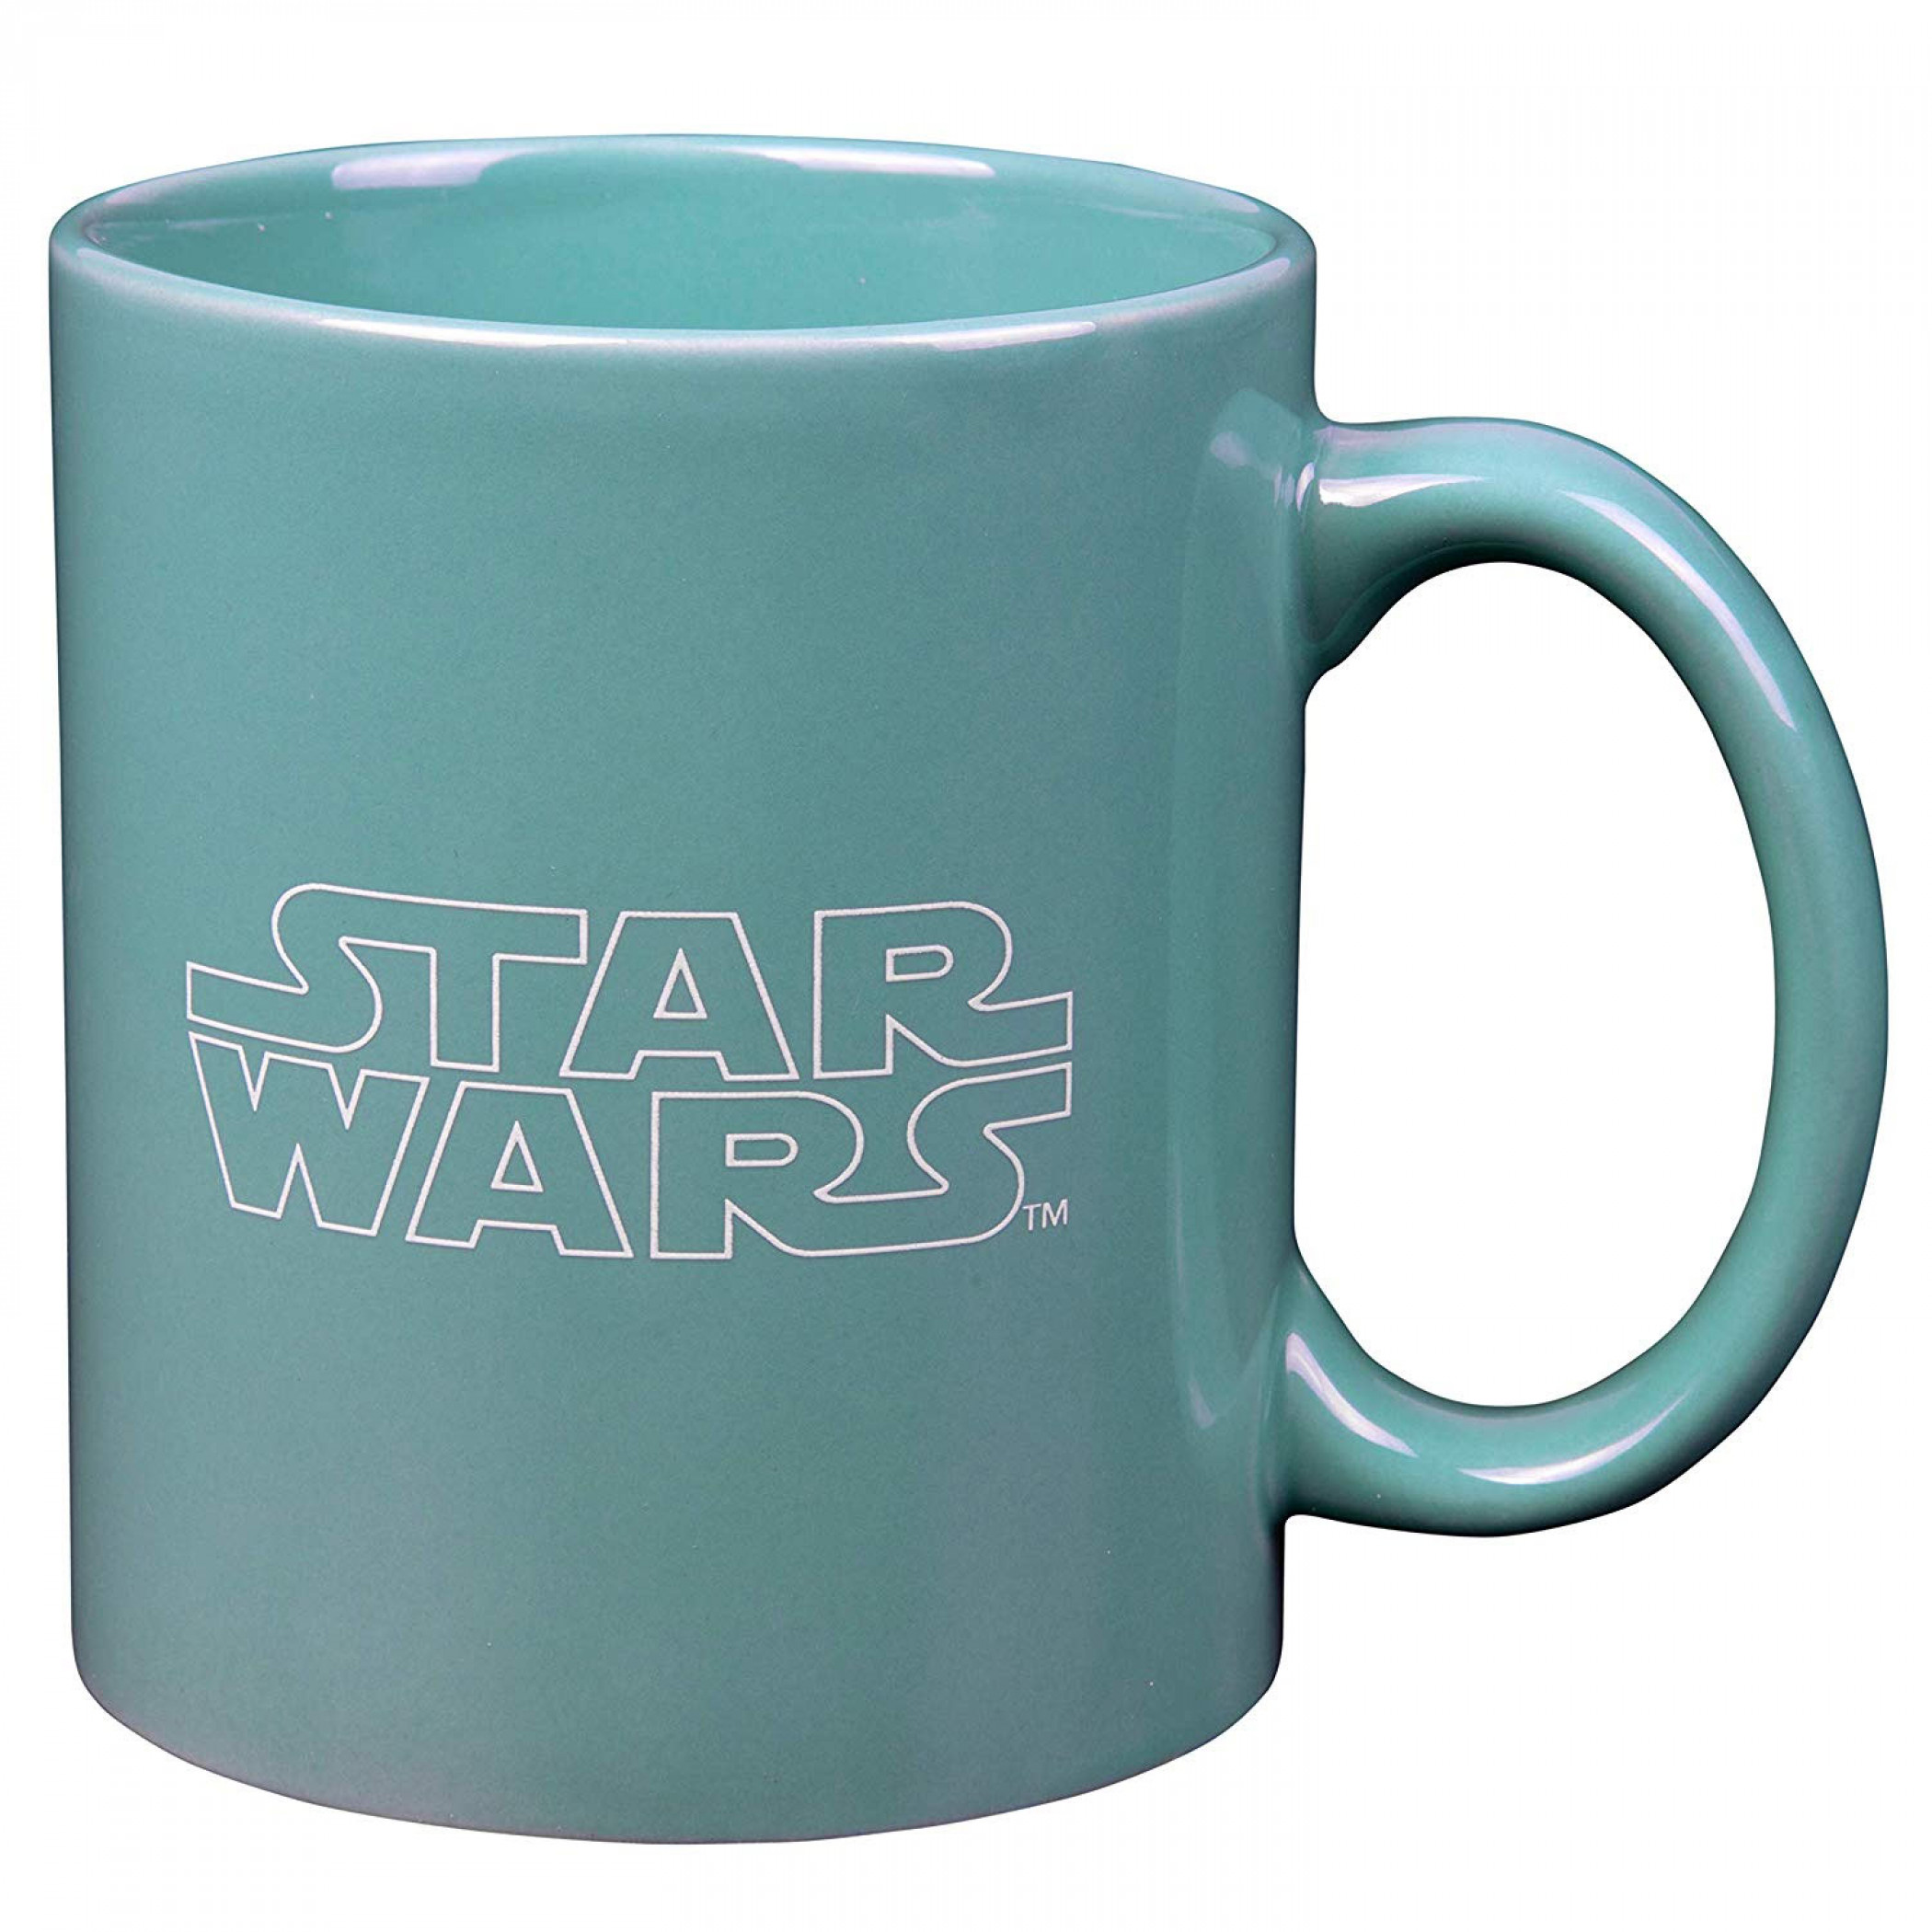 Star Wars Employee of the Month 11oz Mug